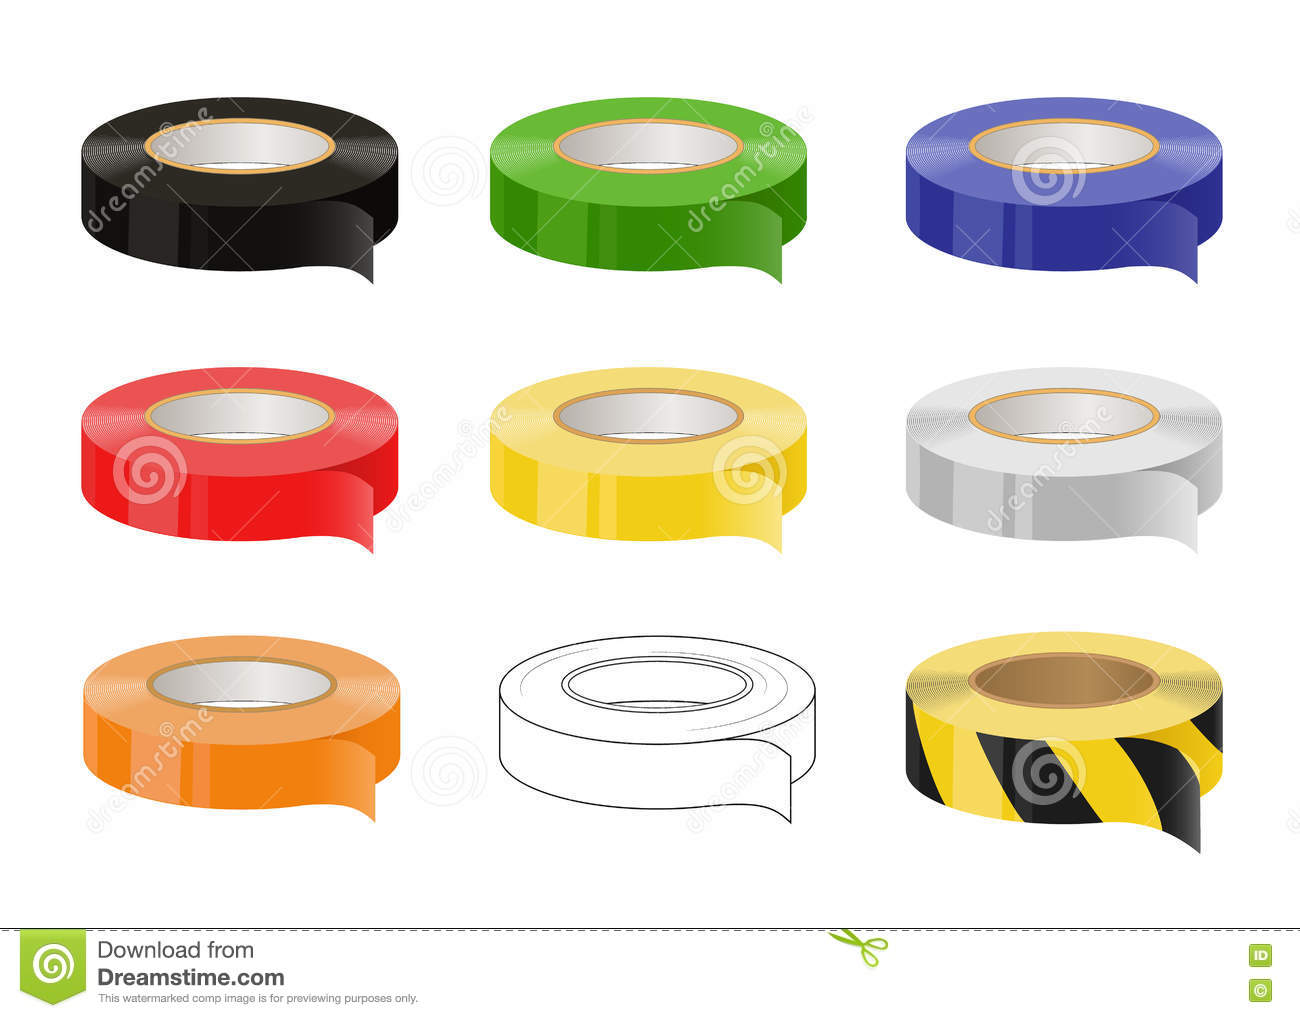 Set of adhesive tapes: black, green, blue, red, yellow, grey, orange, black and yellow caution tape. Isolated illustration. Vector